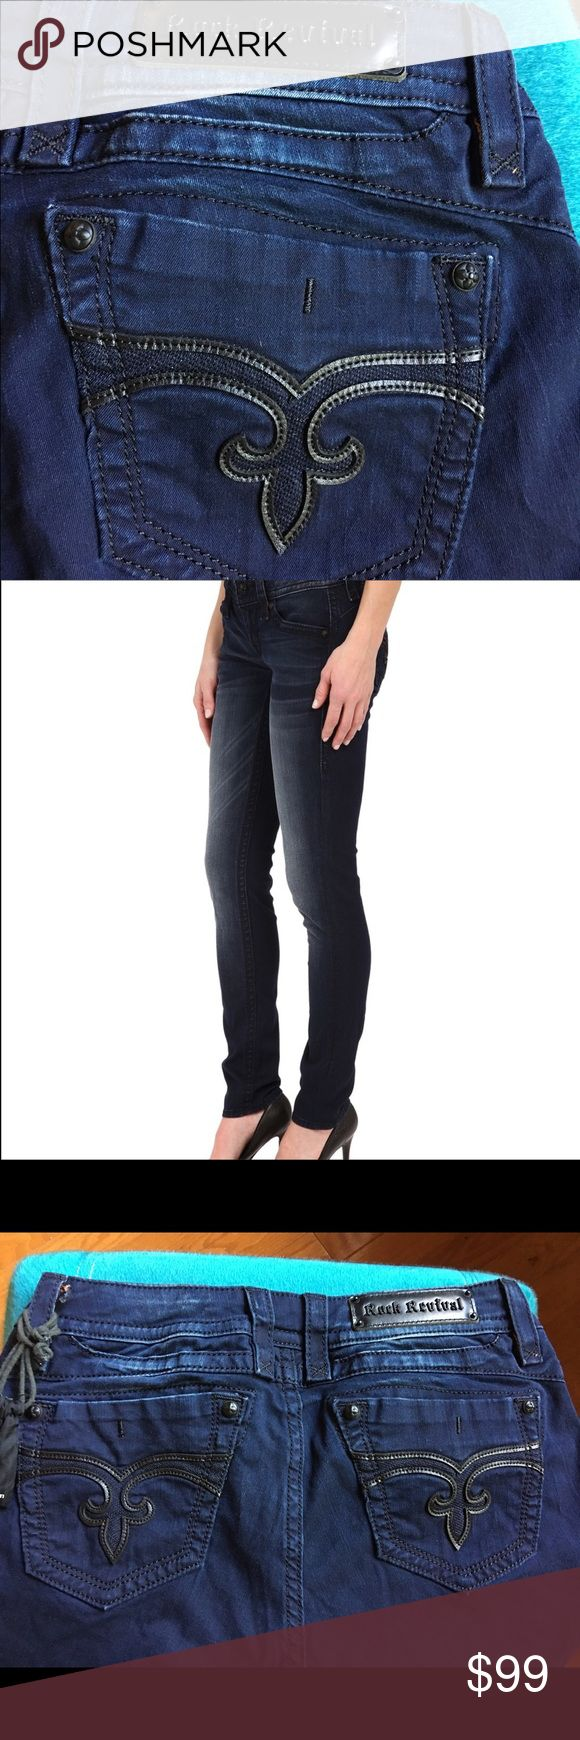 Rock Revival Adele skinny jeans Rock Revival Adele skinny jeans. Brand NWT. Beautiful dark wash blue jeans. Only selling cause I ordered about 3 dark wash jeans so one has to go. No lowballs or TRADES please as they are still returnable. Rock Revival Jeans